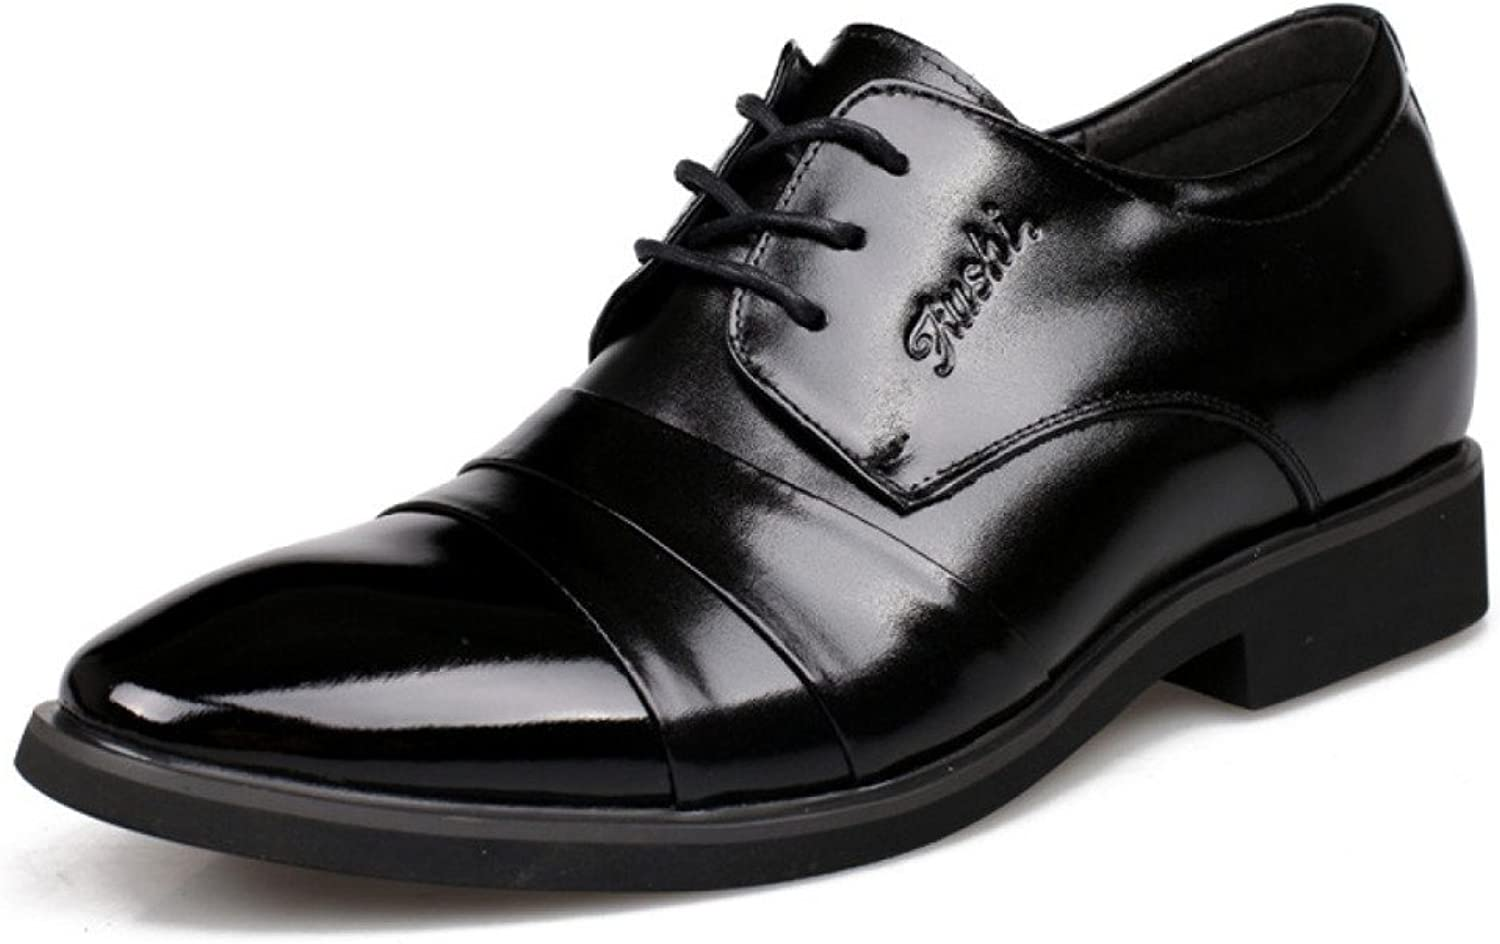 Men's shoes, Business, Formal Wear, Heightening shoes, 6cm, Leather shoes, Men's shoes